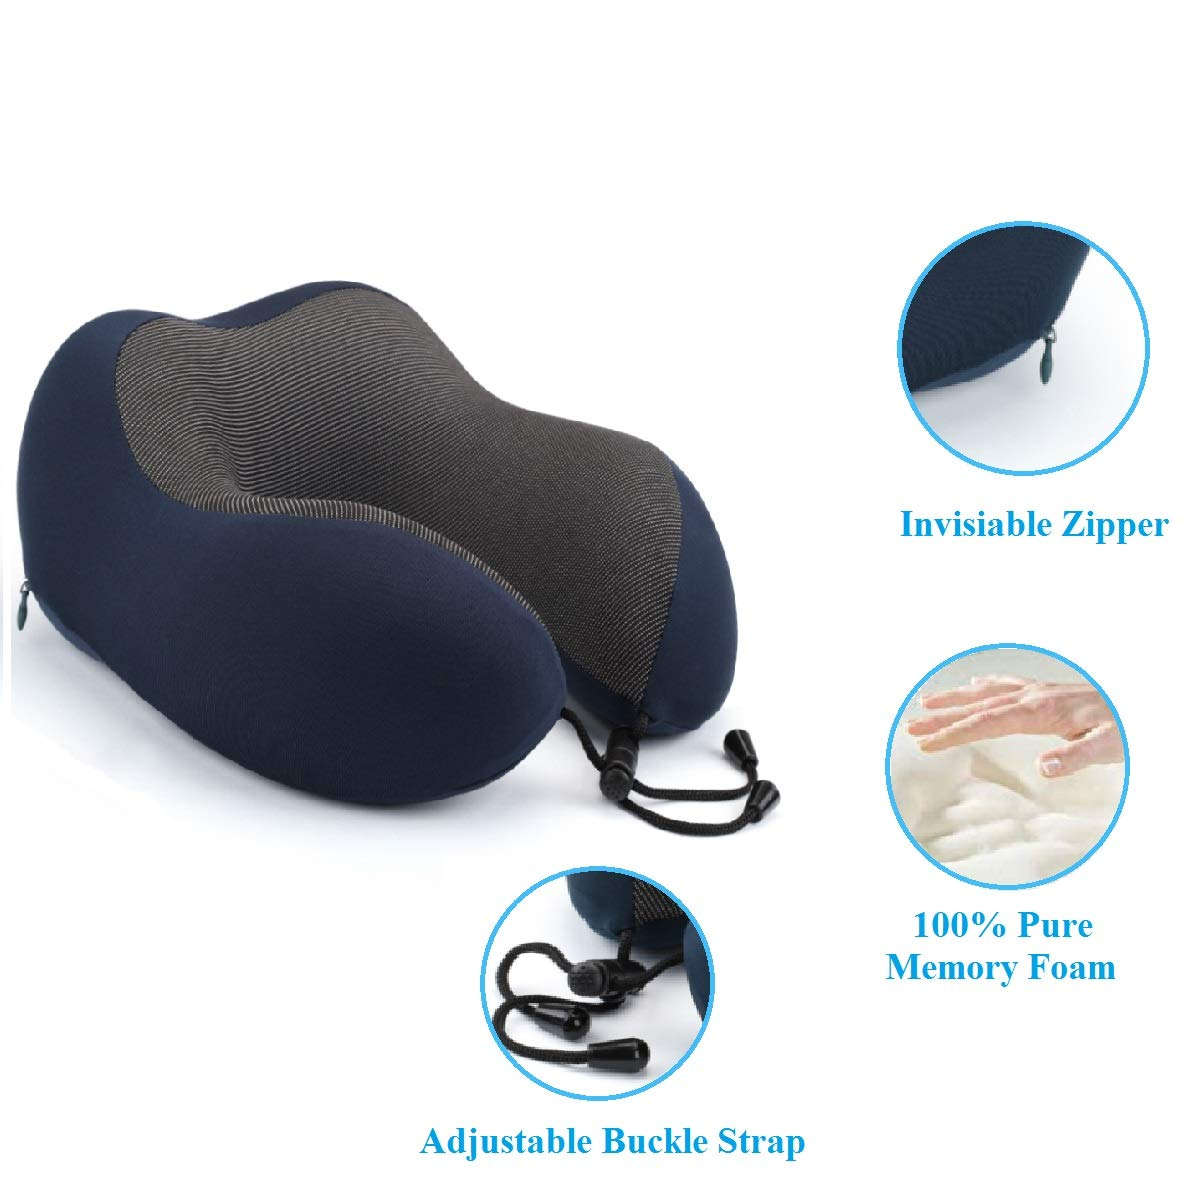 Keenstone Travel Pillow, Memory Foam Travel Pillows for Airplanes, Comfortable Kids Travel Neck Pillow, 3D Sleep Mask, Earplugs, Luxury Bag, Portable Neck Support for Airplane/Car/Office, Dark Blue